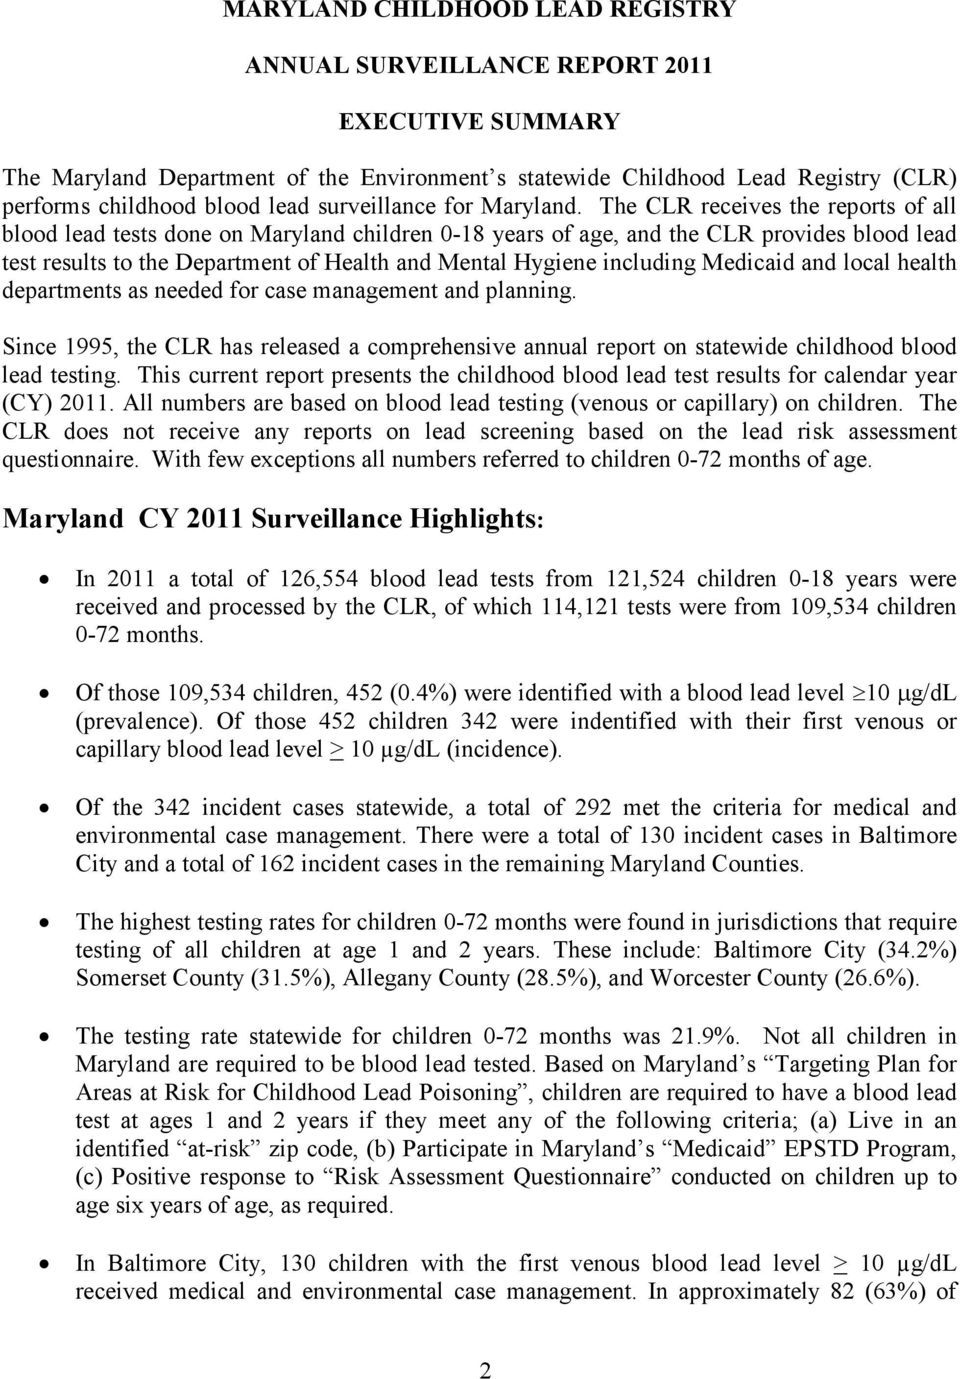 The CLR receives the reports of all blood lead tests done on Maryland children 0-18 years of age, and the CLR provides blood lead test results to the Department of Health and Mental Hygiene including